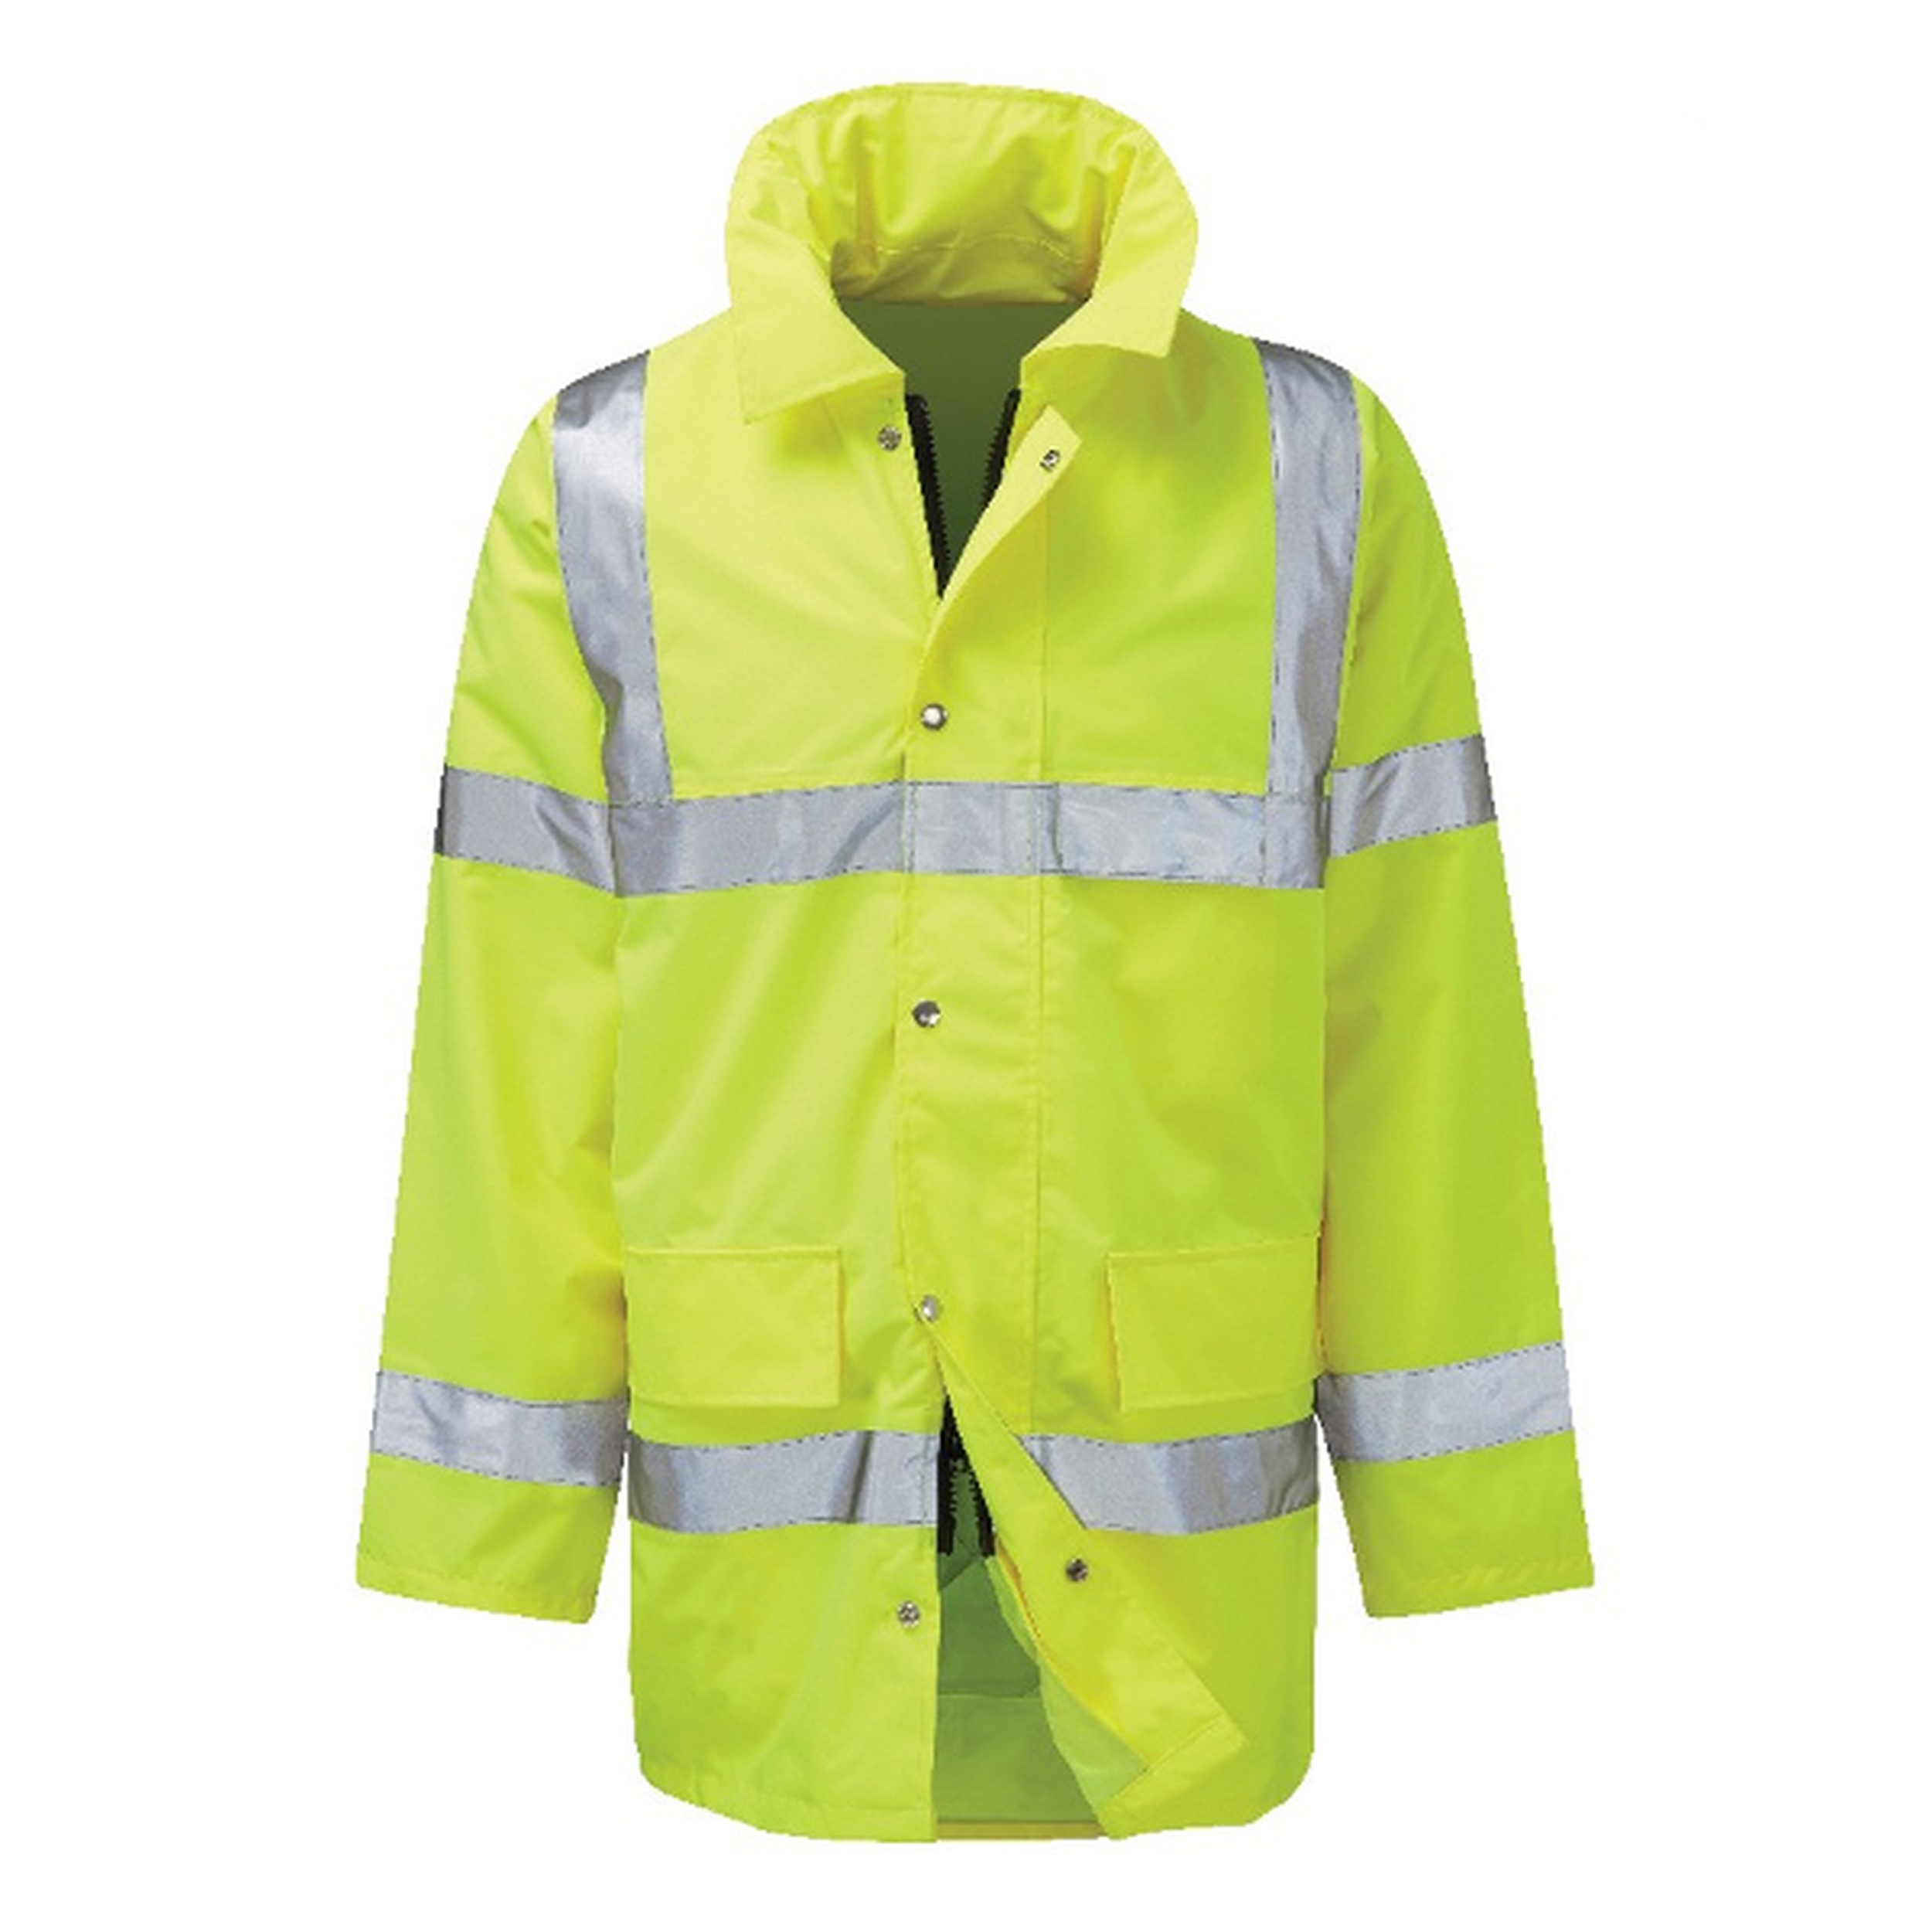 FWEJ Geraint Hi-Vis Yellow Traffic Jacket